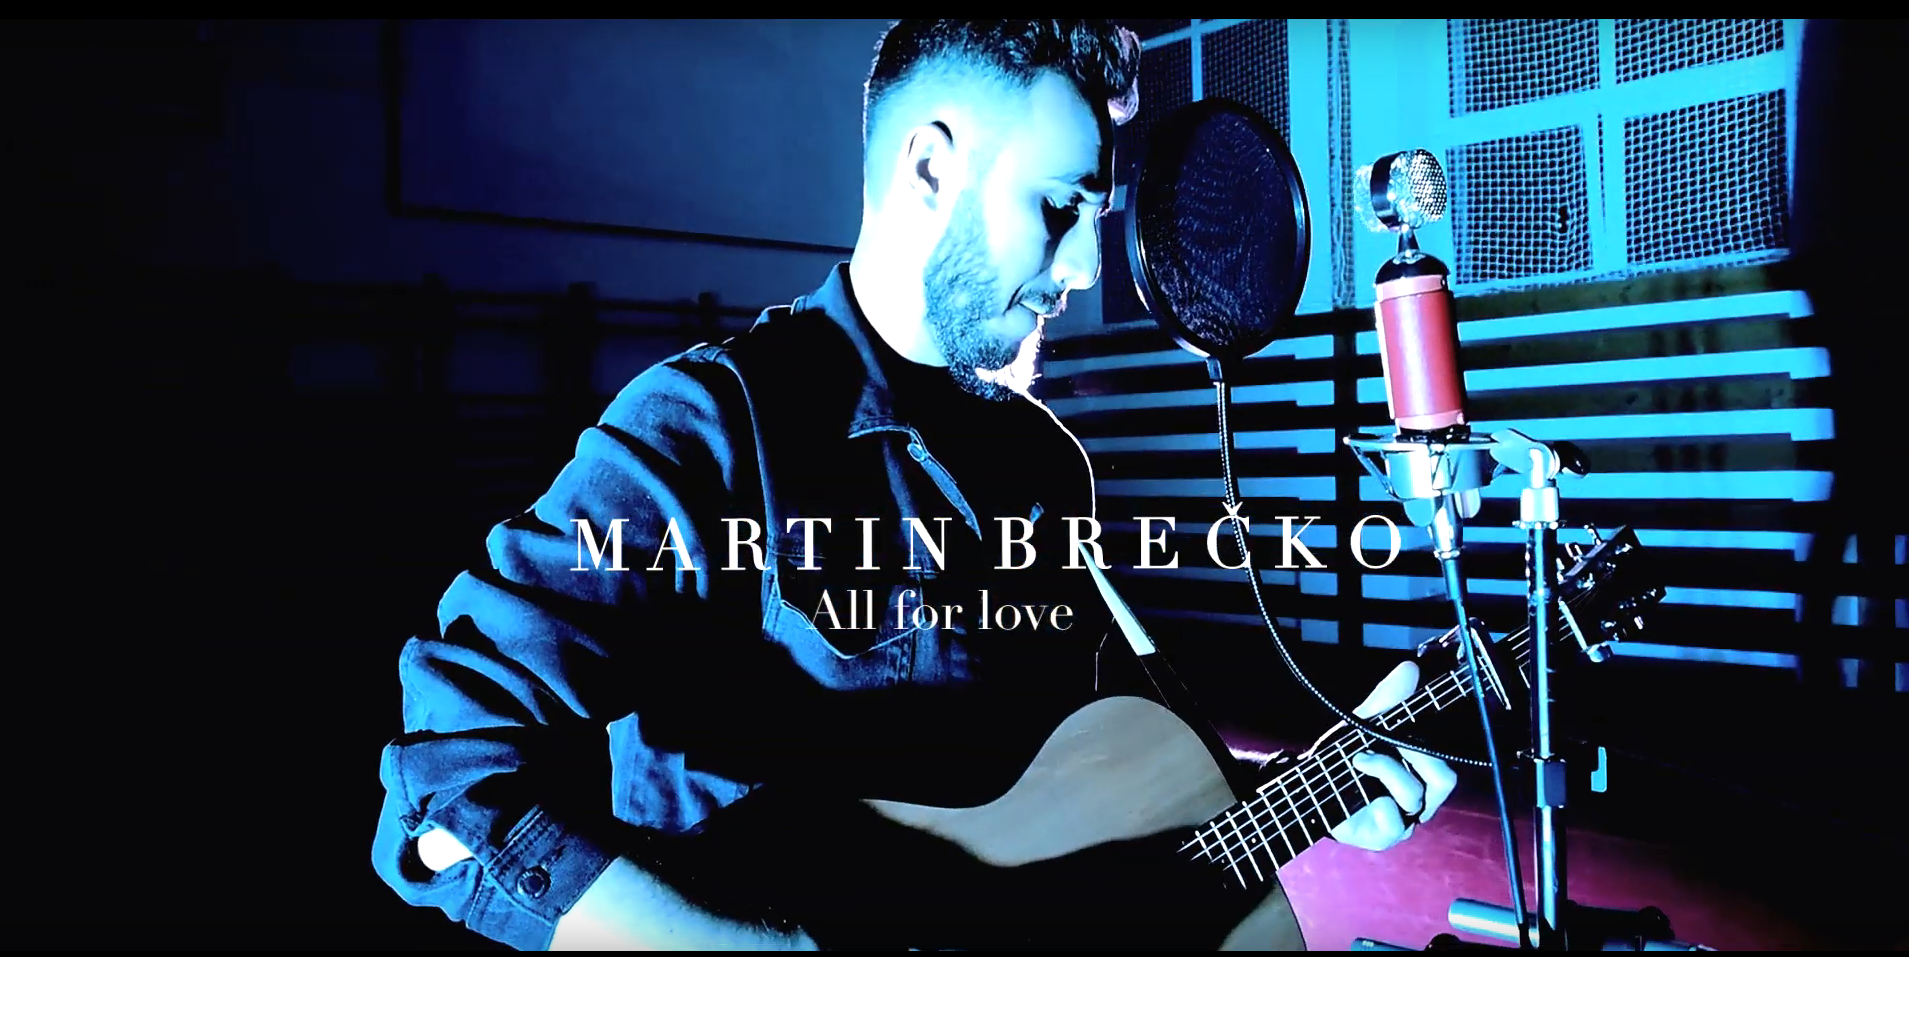 Martin Brečko All for love (Bryan Adams Rod Stewart & Sting